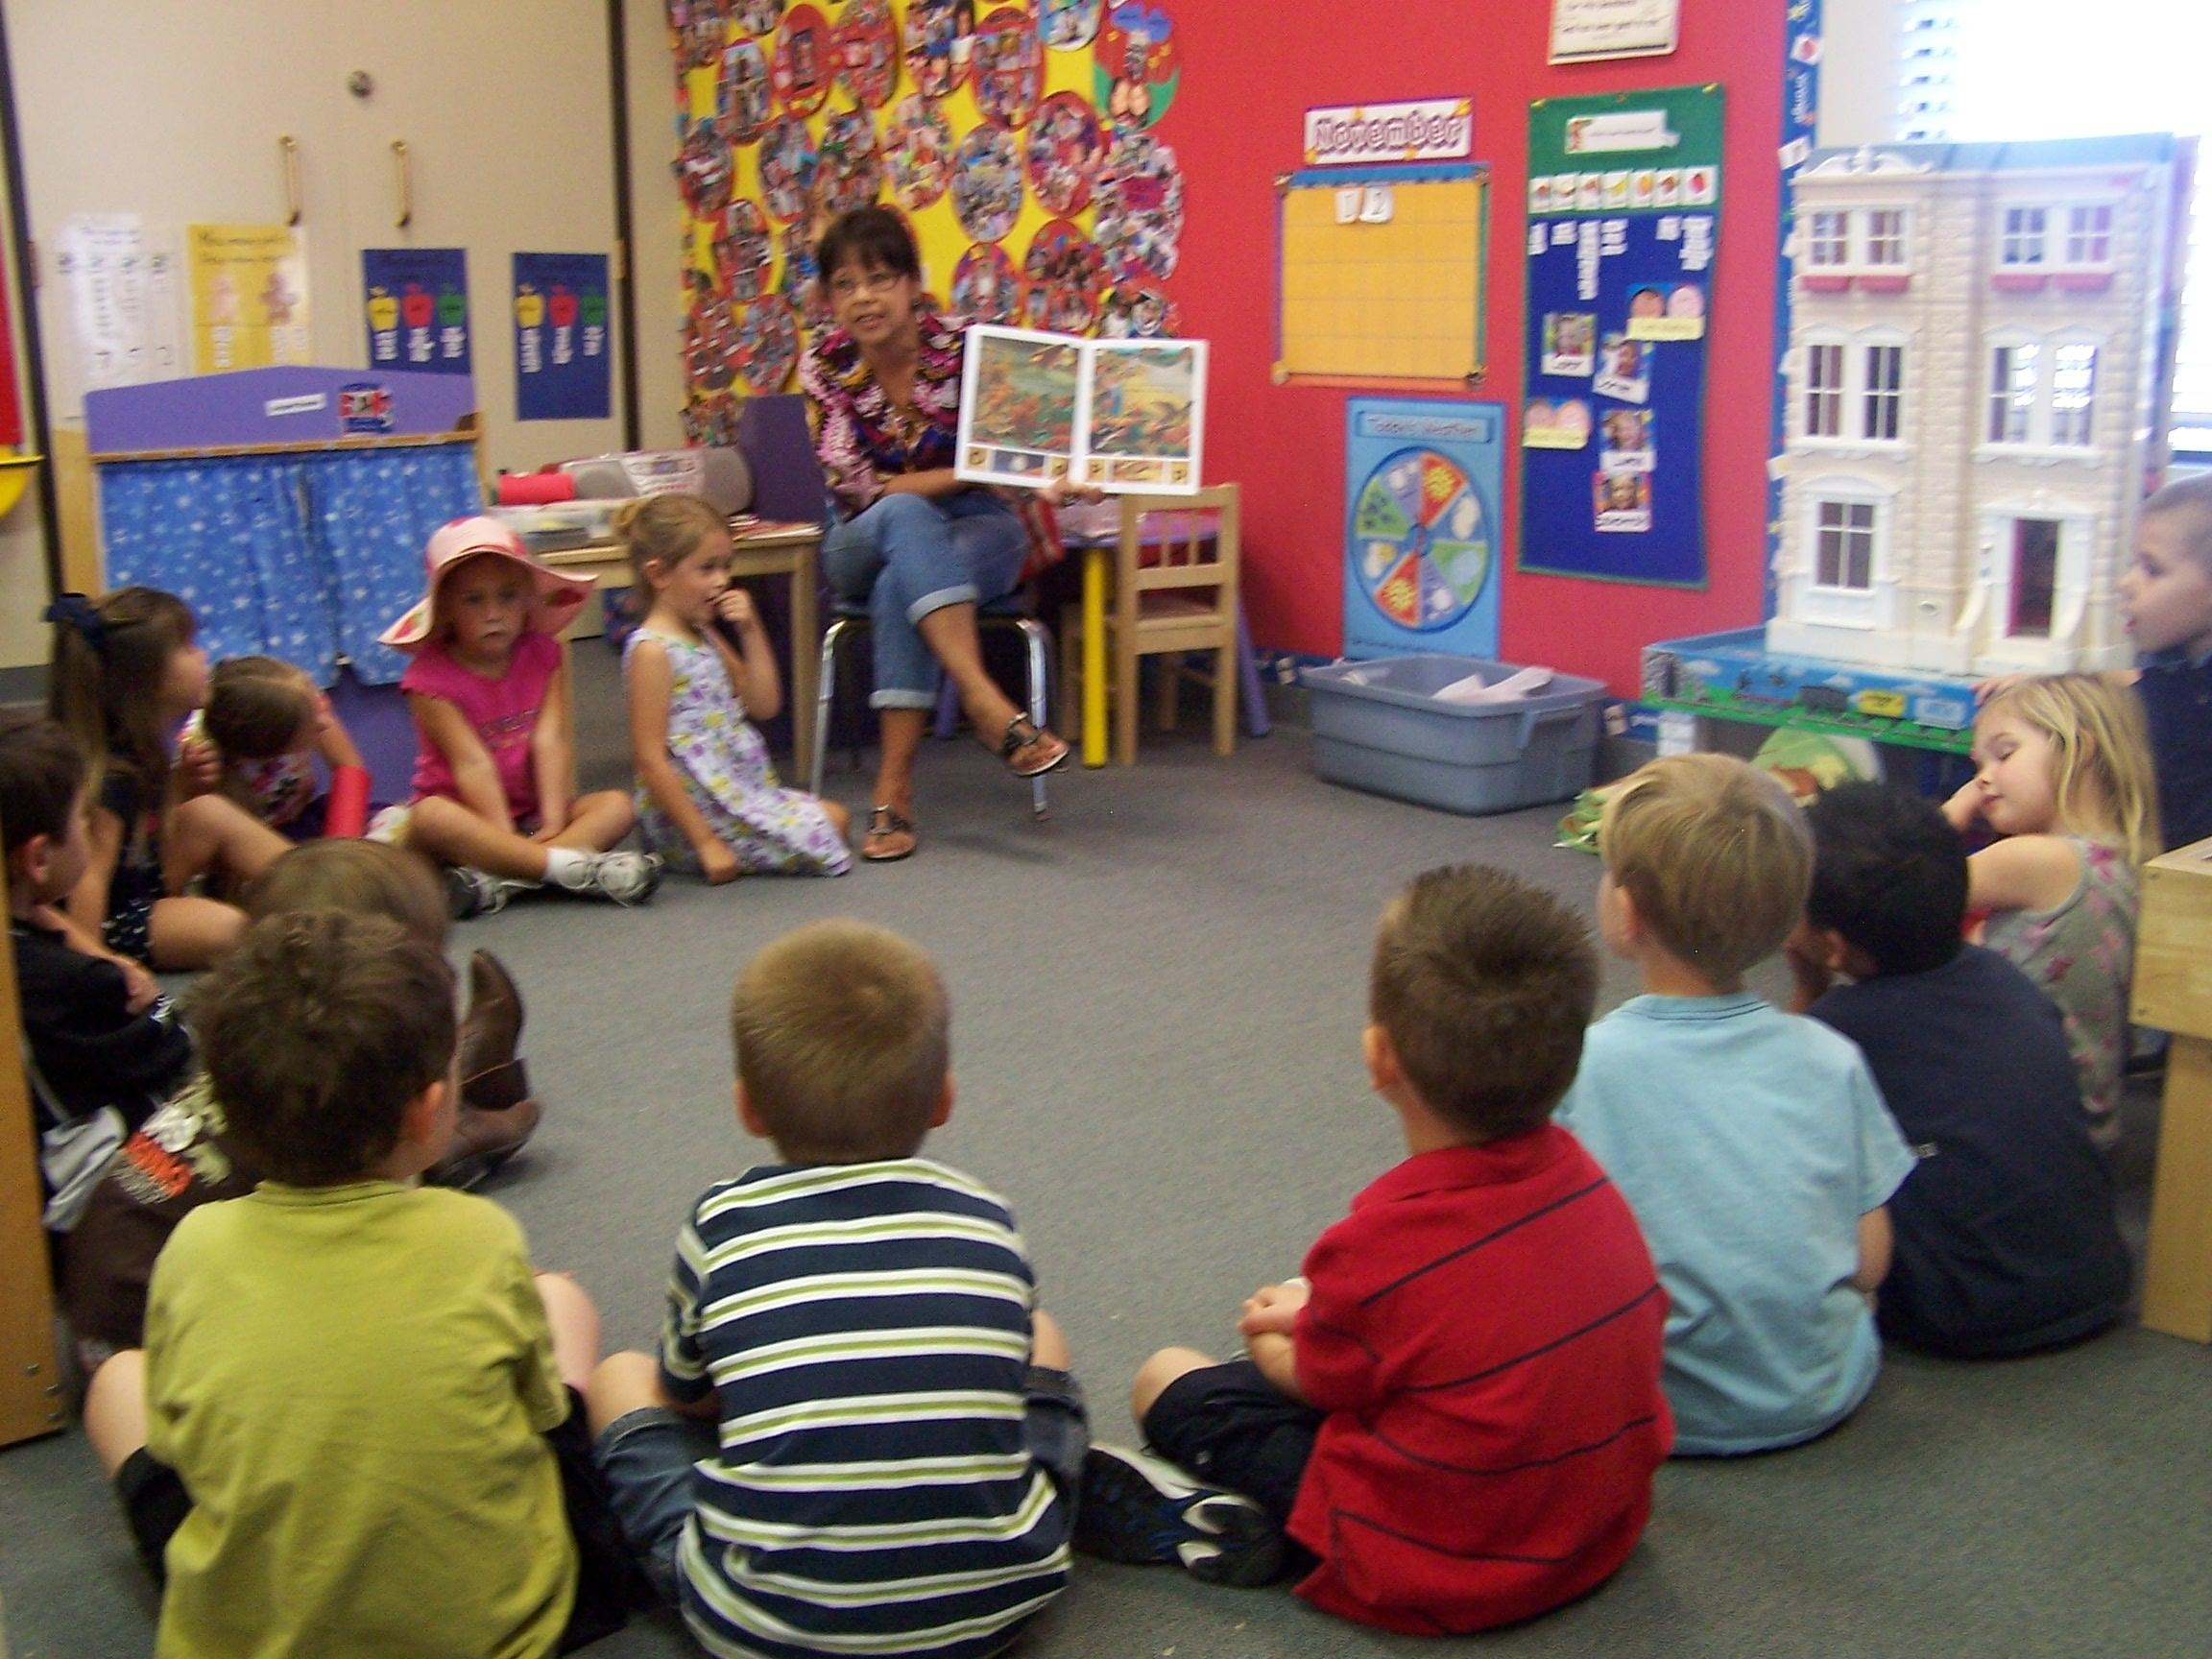 Saddleback Children's Center image 11